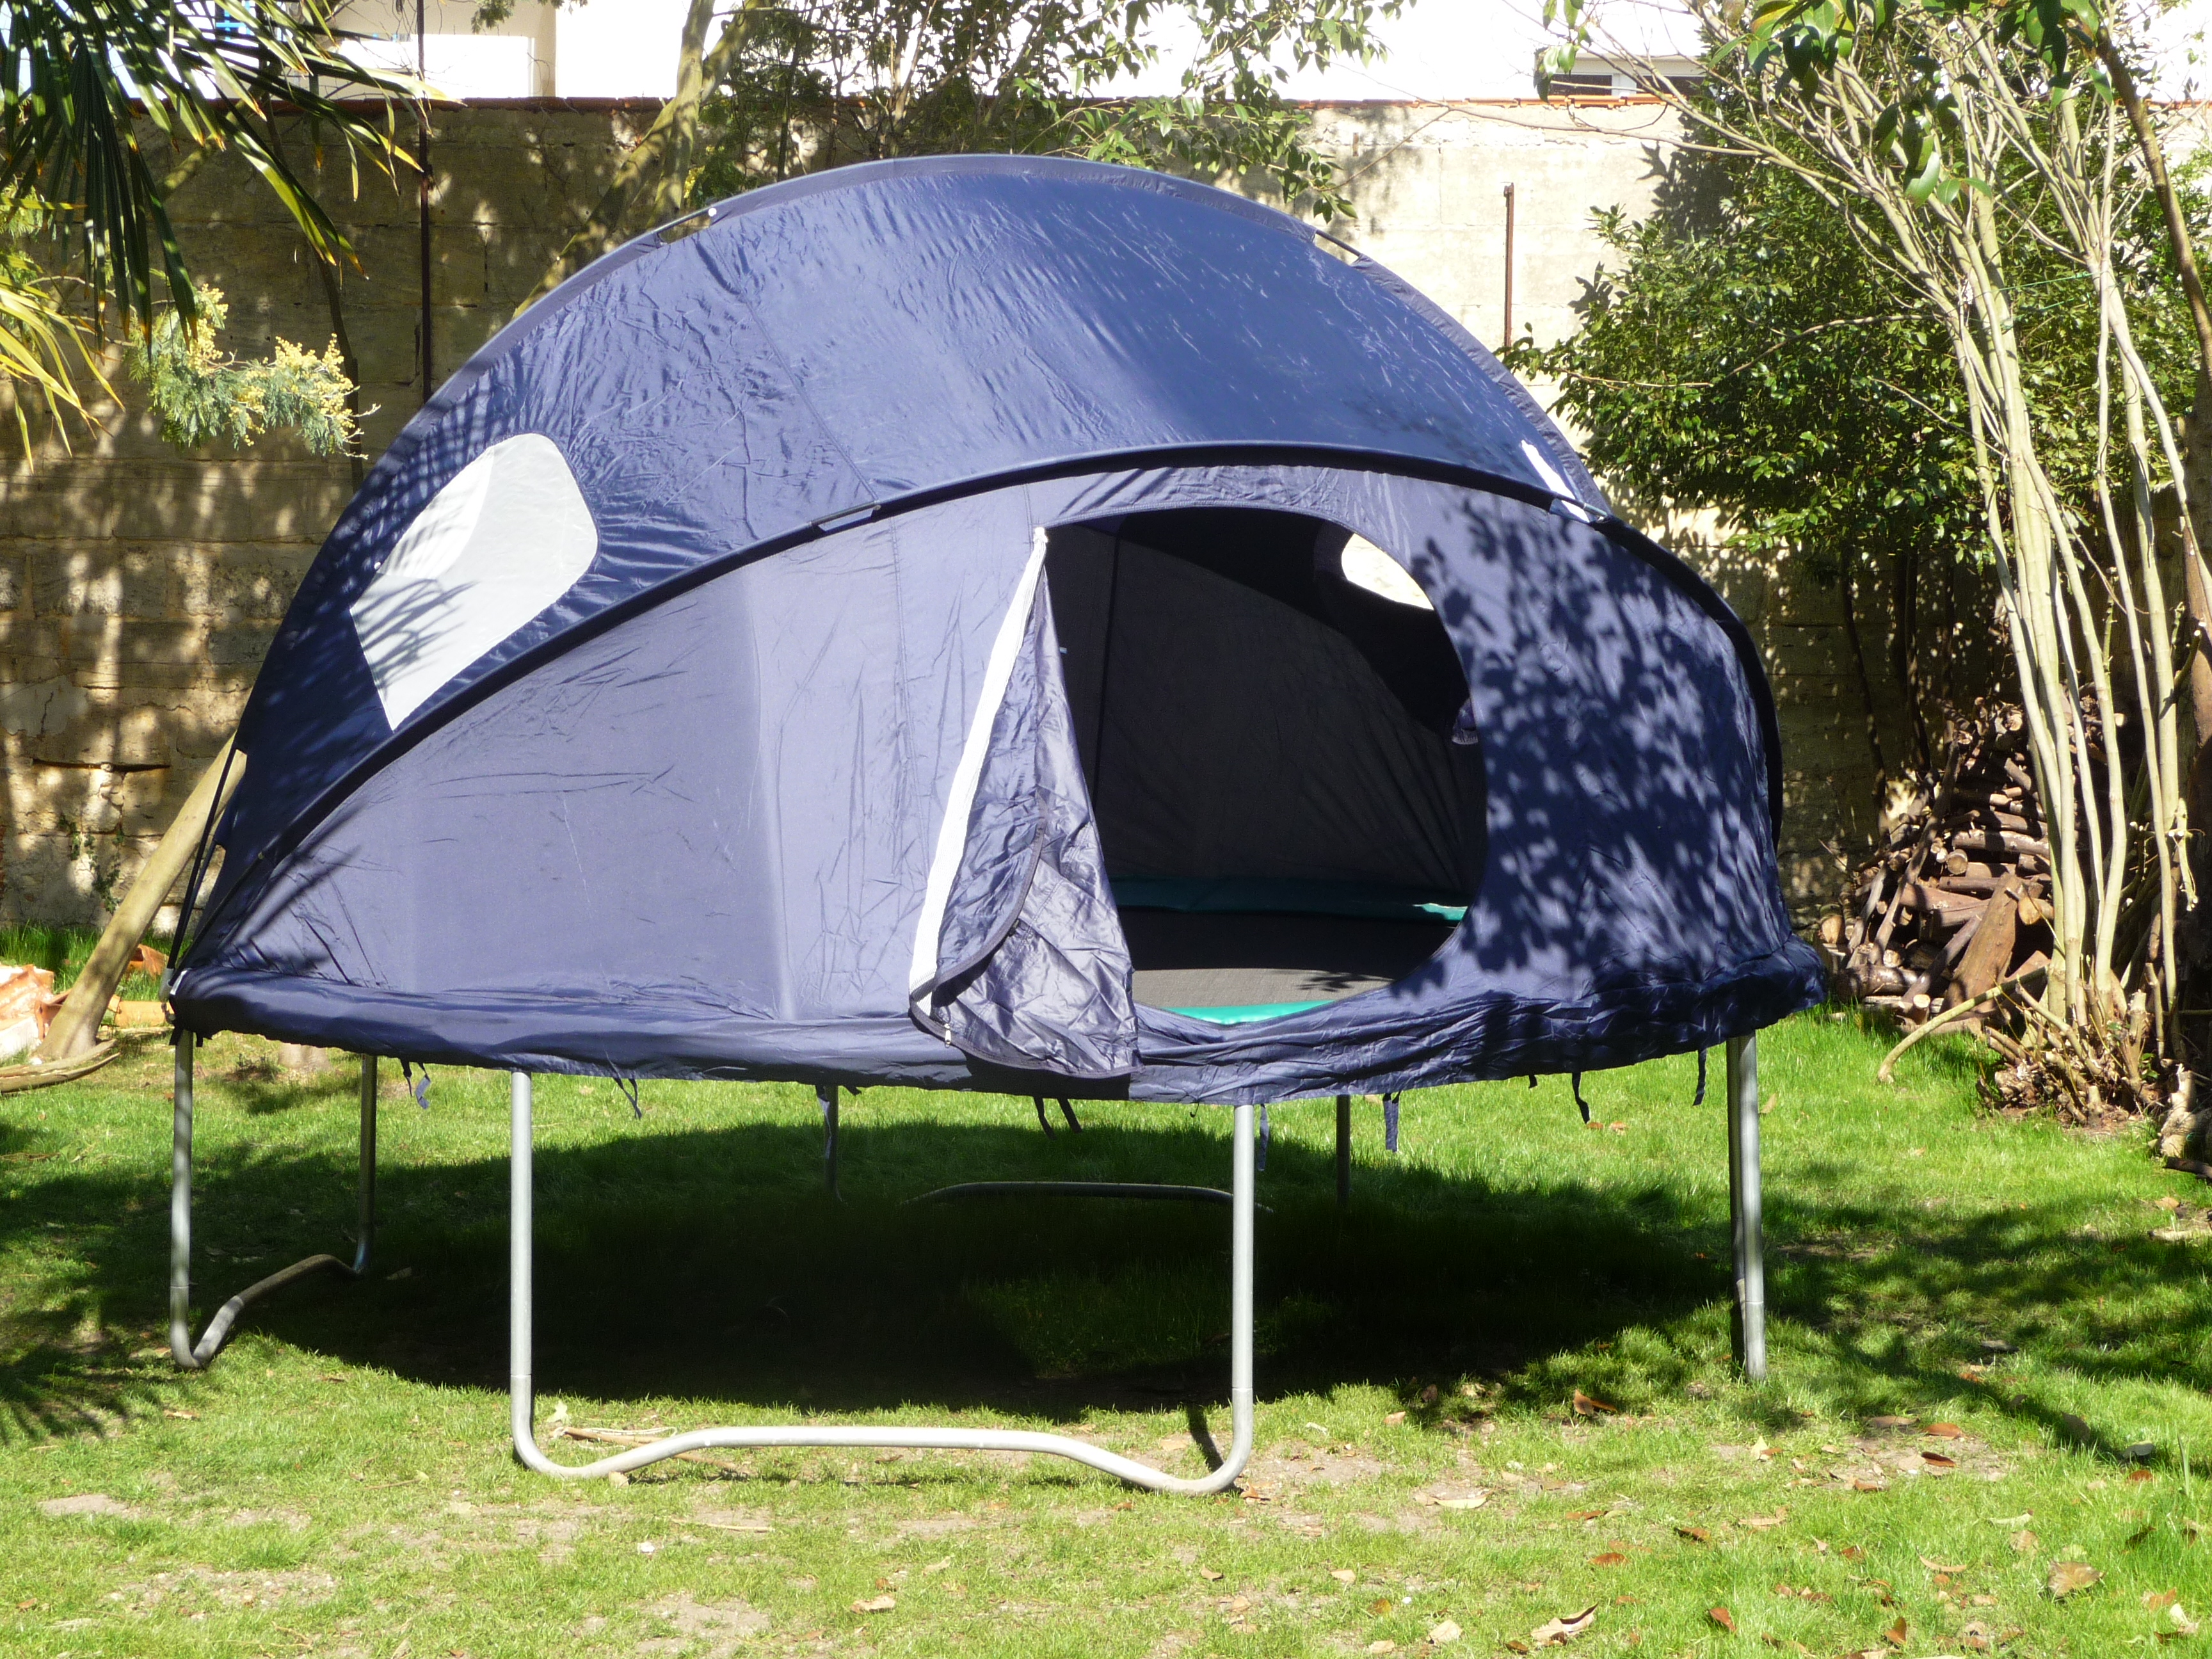 faire du camping sur un trampoline c est possible france trampoline le blog sur le trampoline. Black Bedroom Furniture Sets. Home Design Ideas